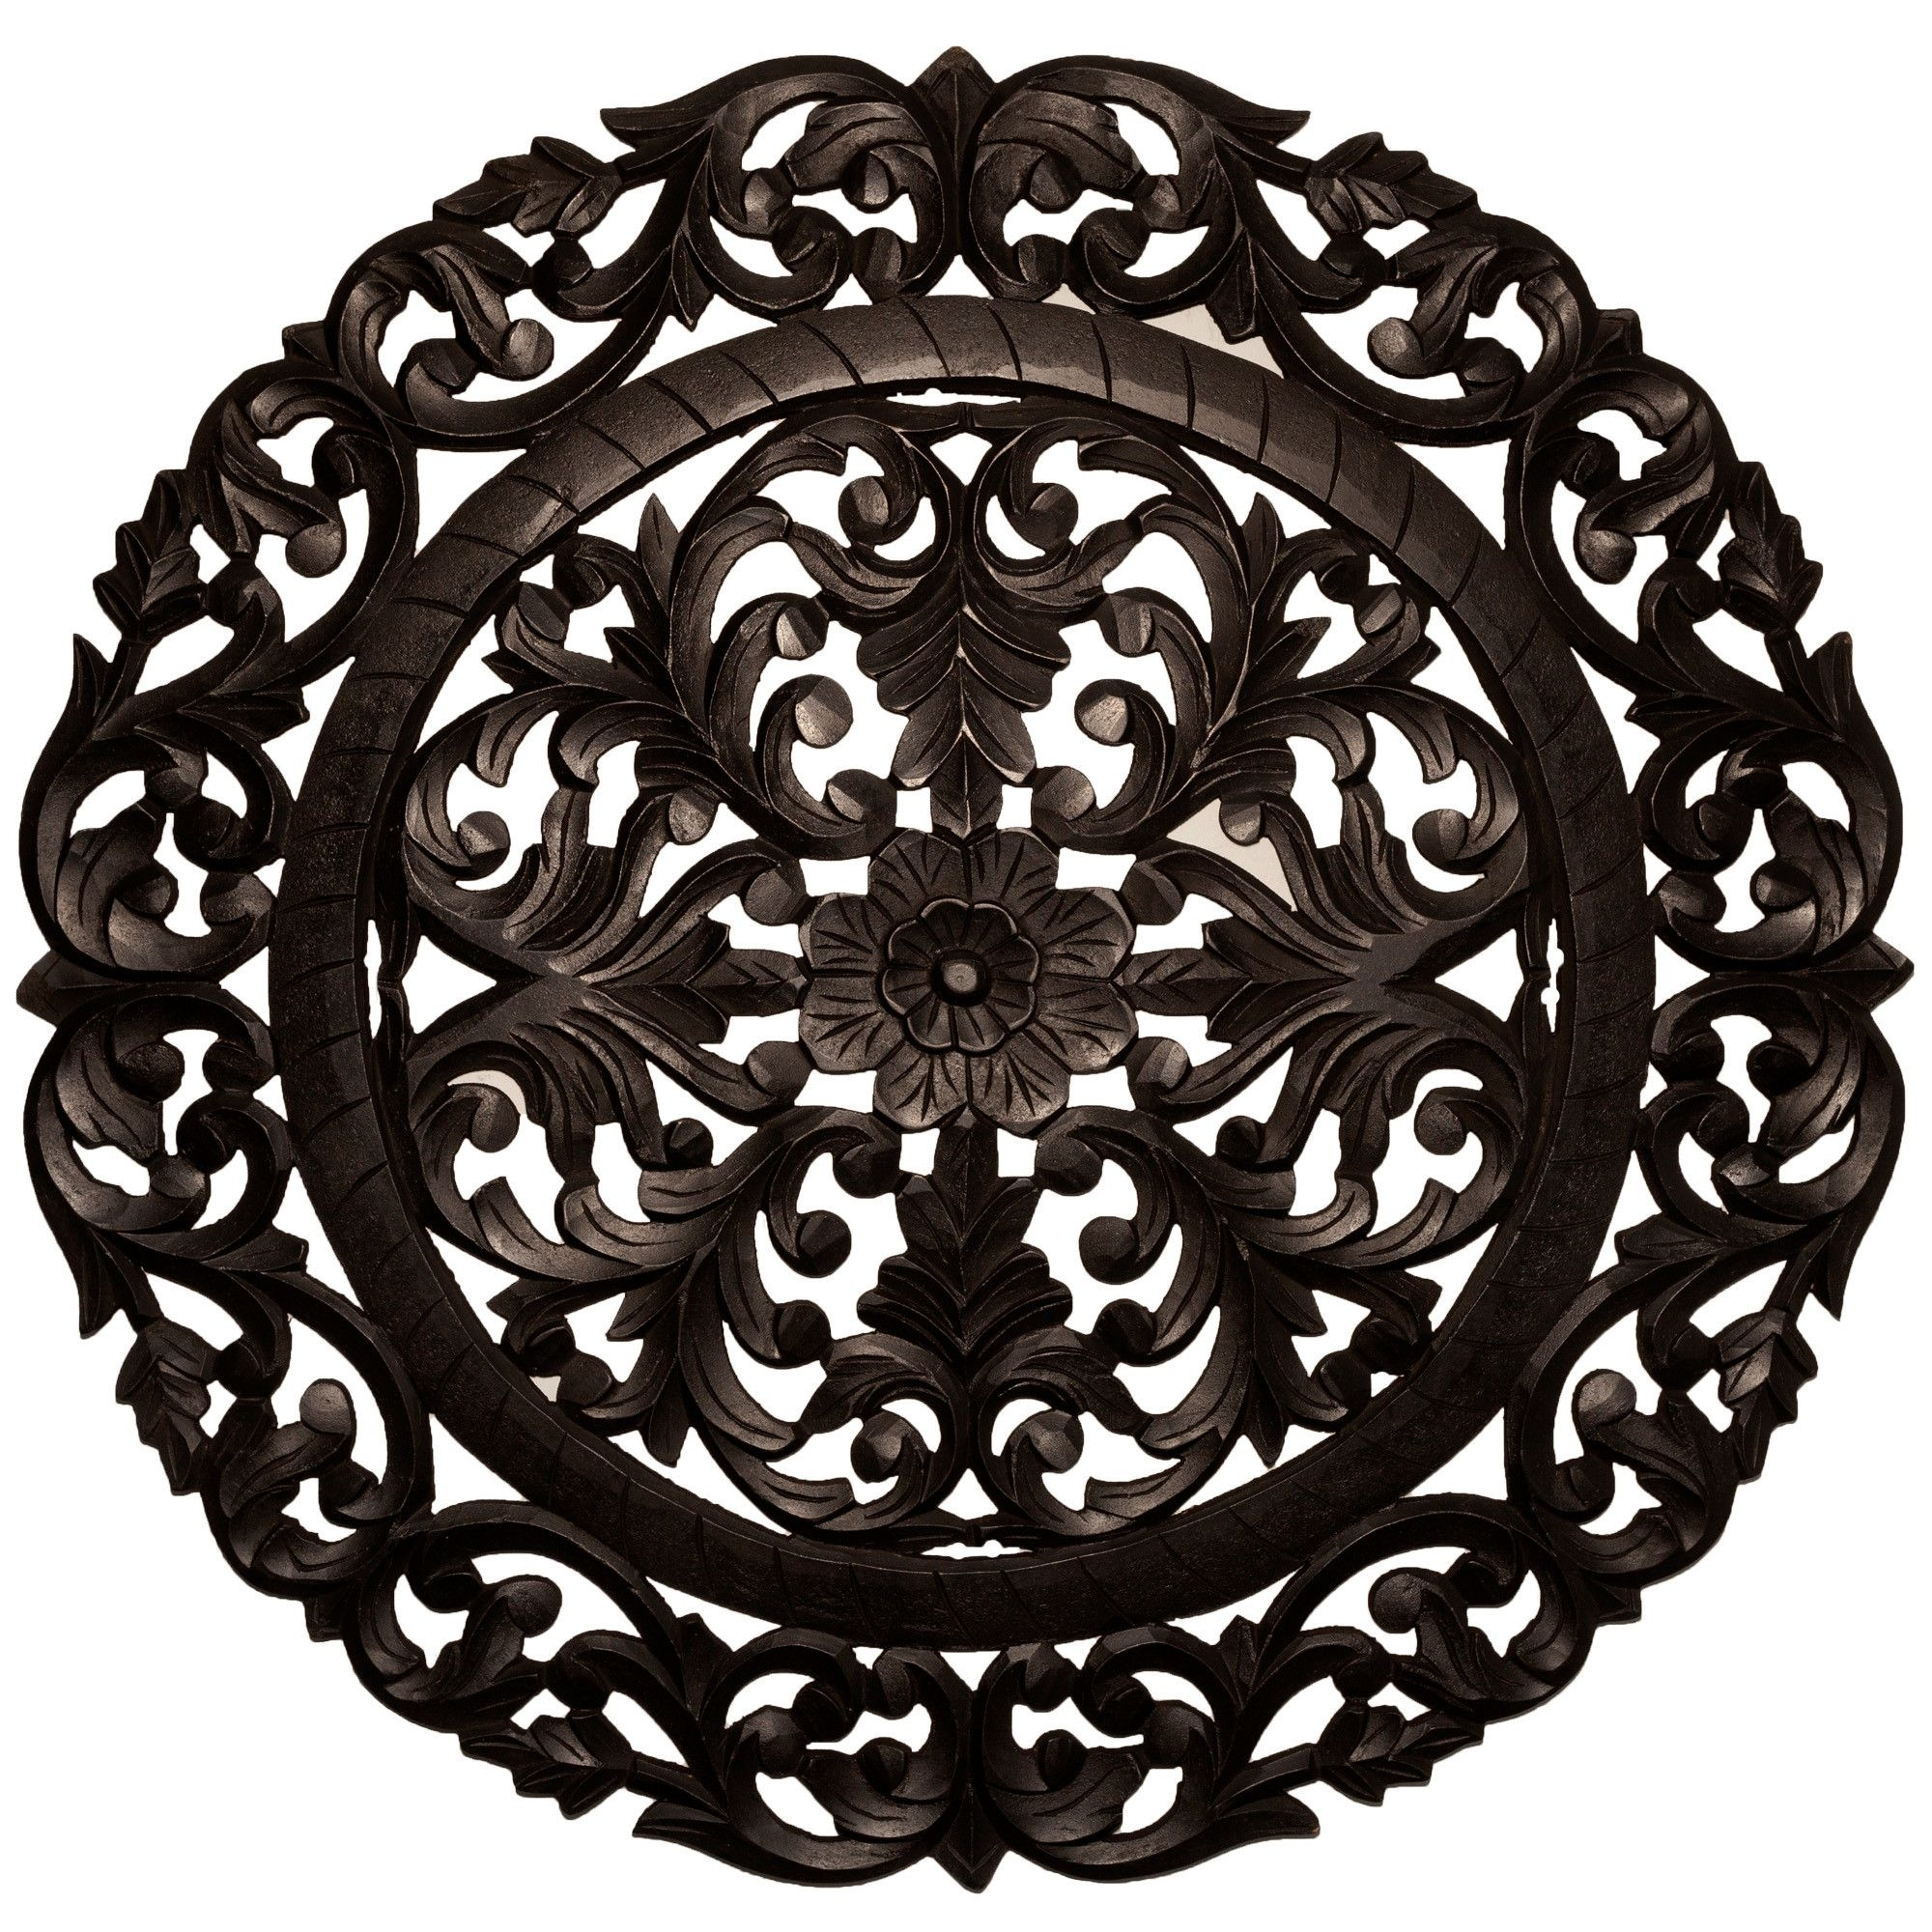 Leroy Handcrafted Medallion Wall Decor | Wayfair | Building The Nest With Regard To Most Popular Medallion Wall Art (Gallery 18 of 20)